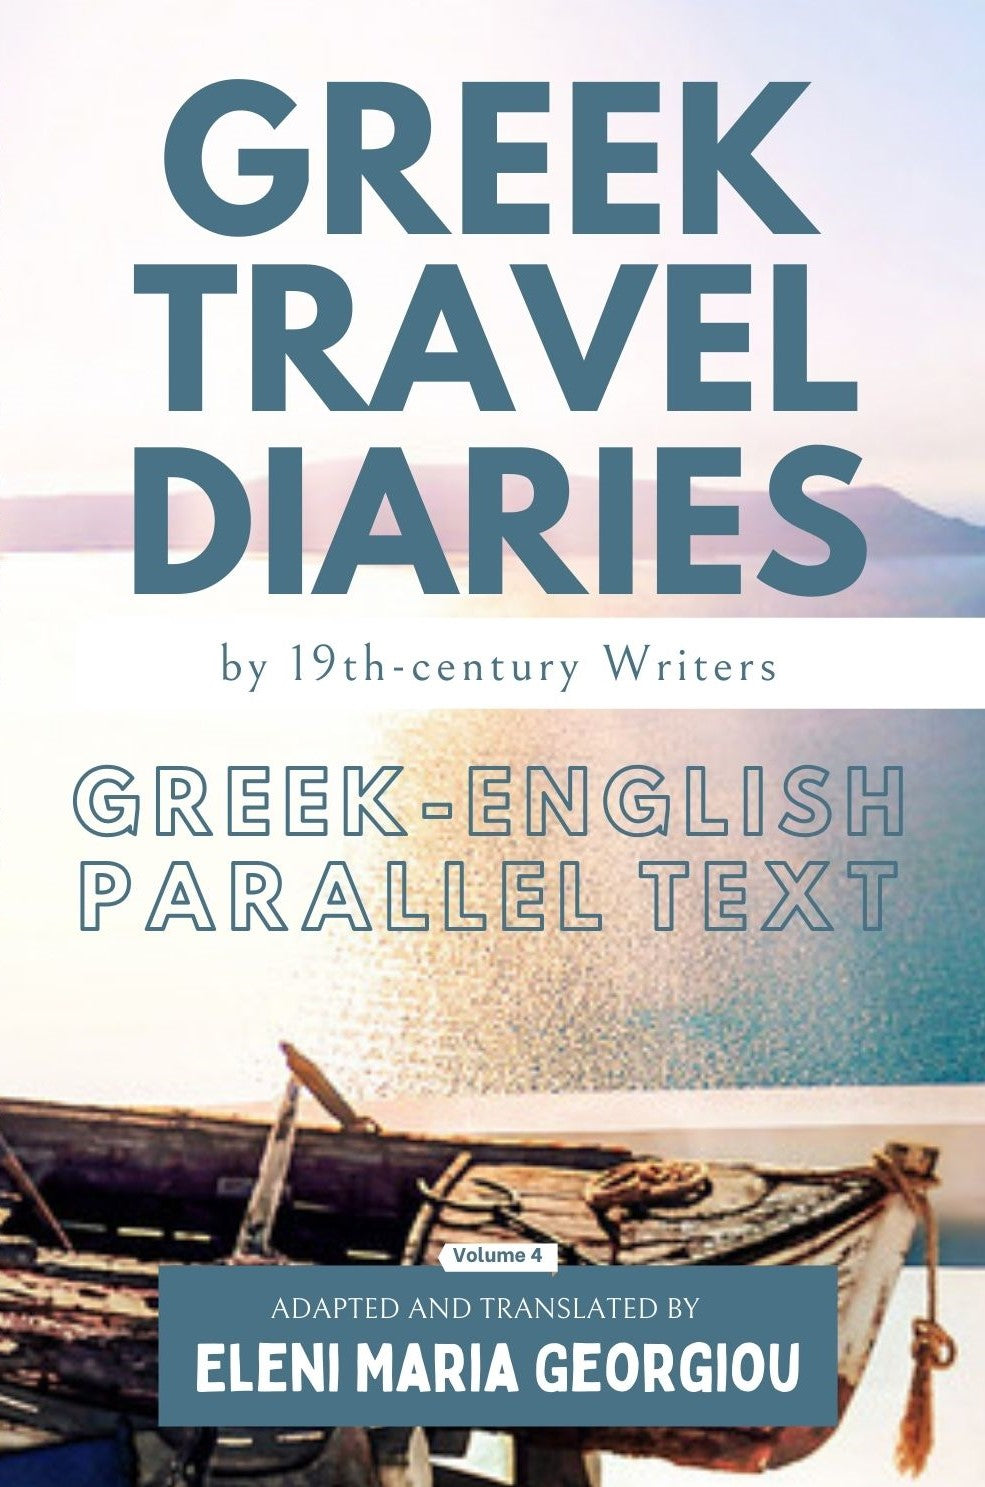 Greek Travel Diaries by 19th-century Writers: Greek-English Parallel Text - Volume 4